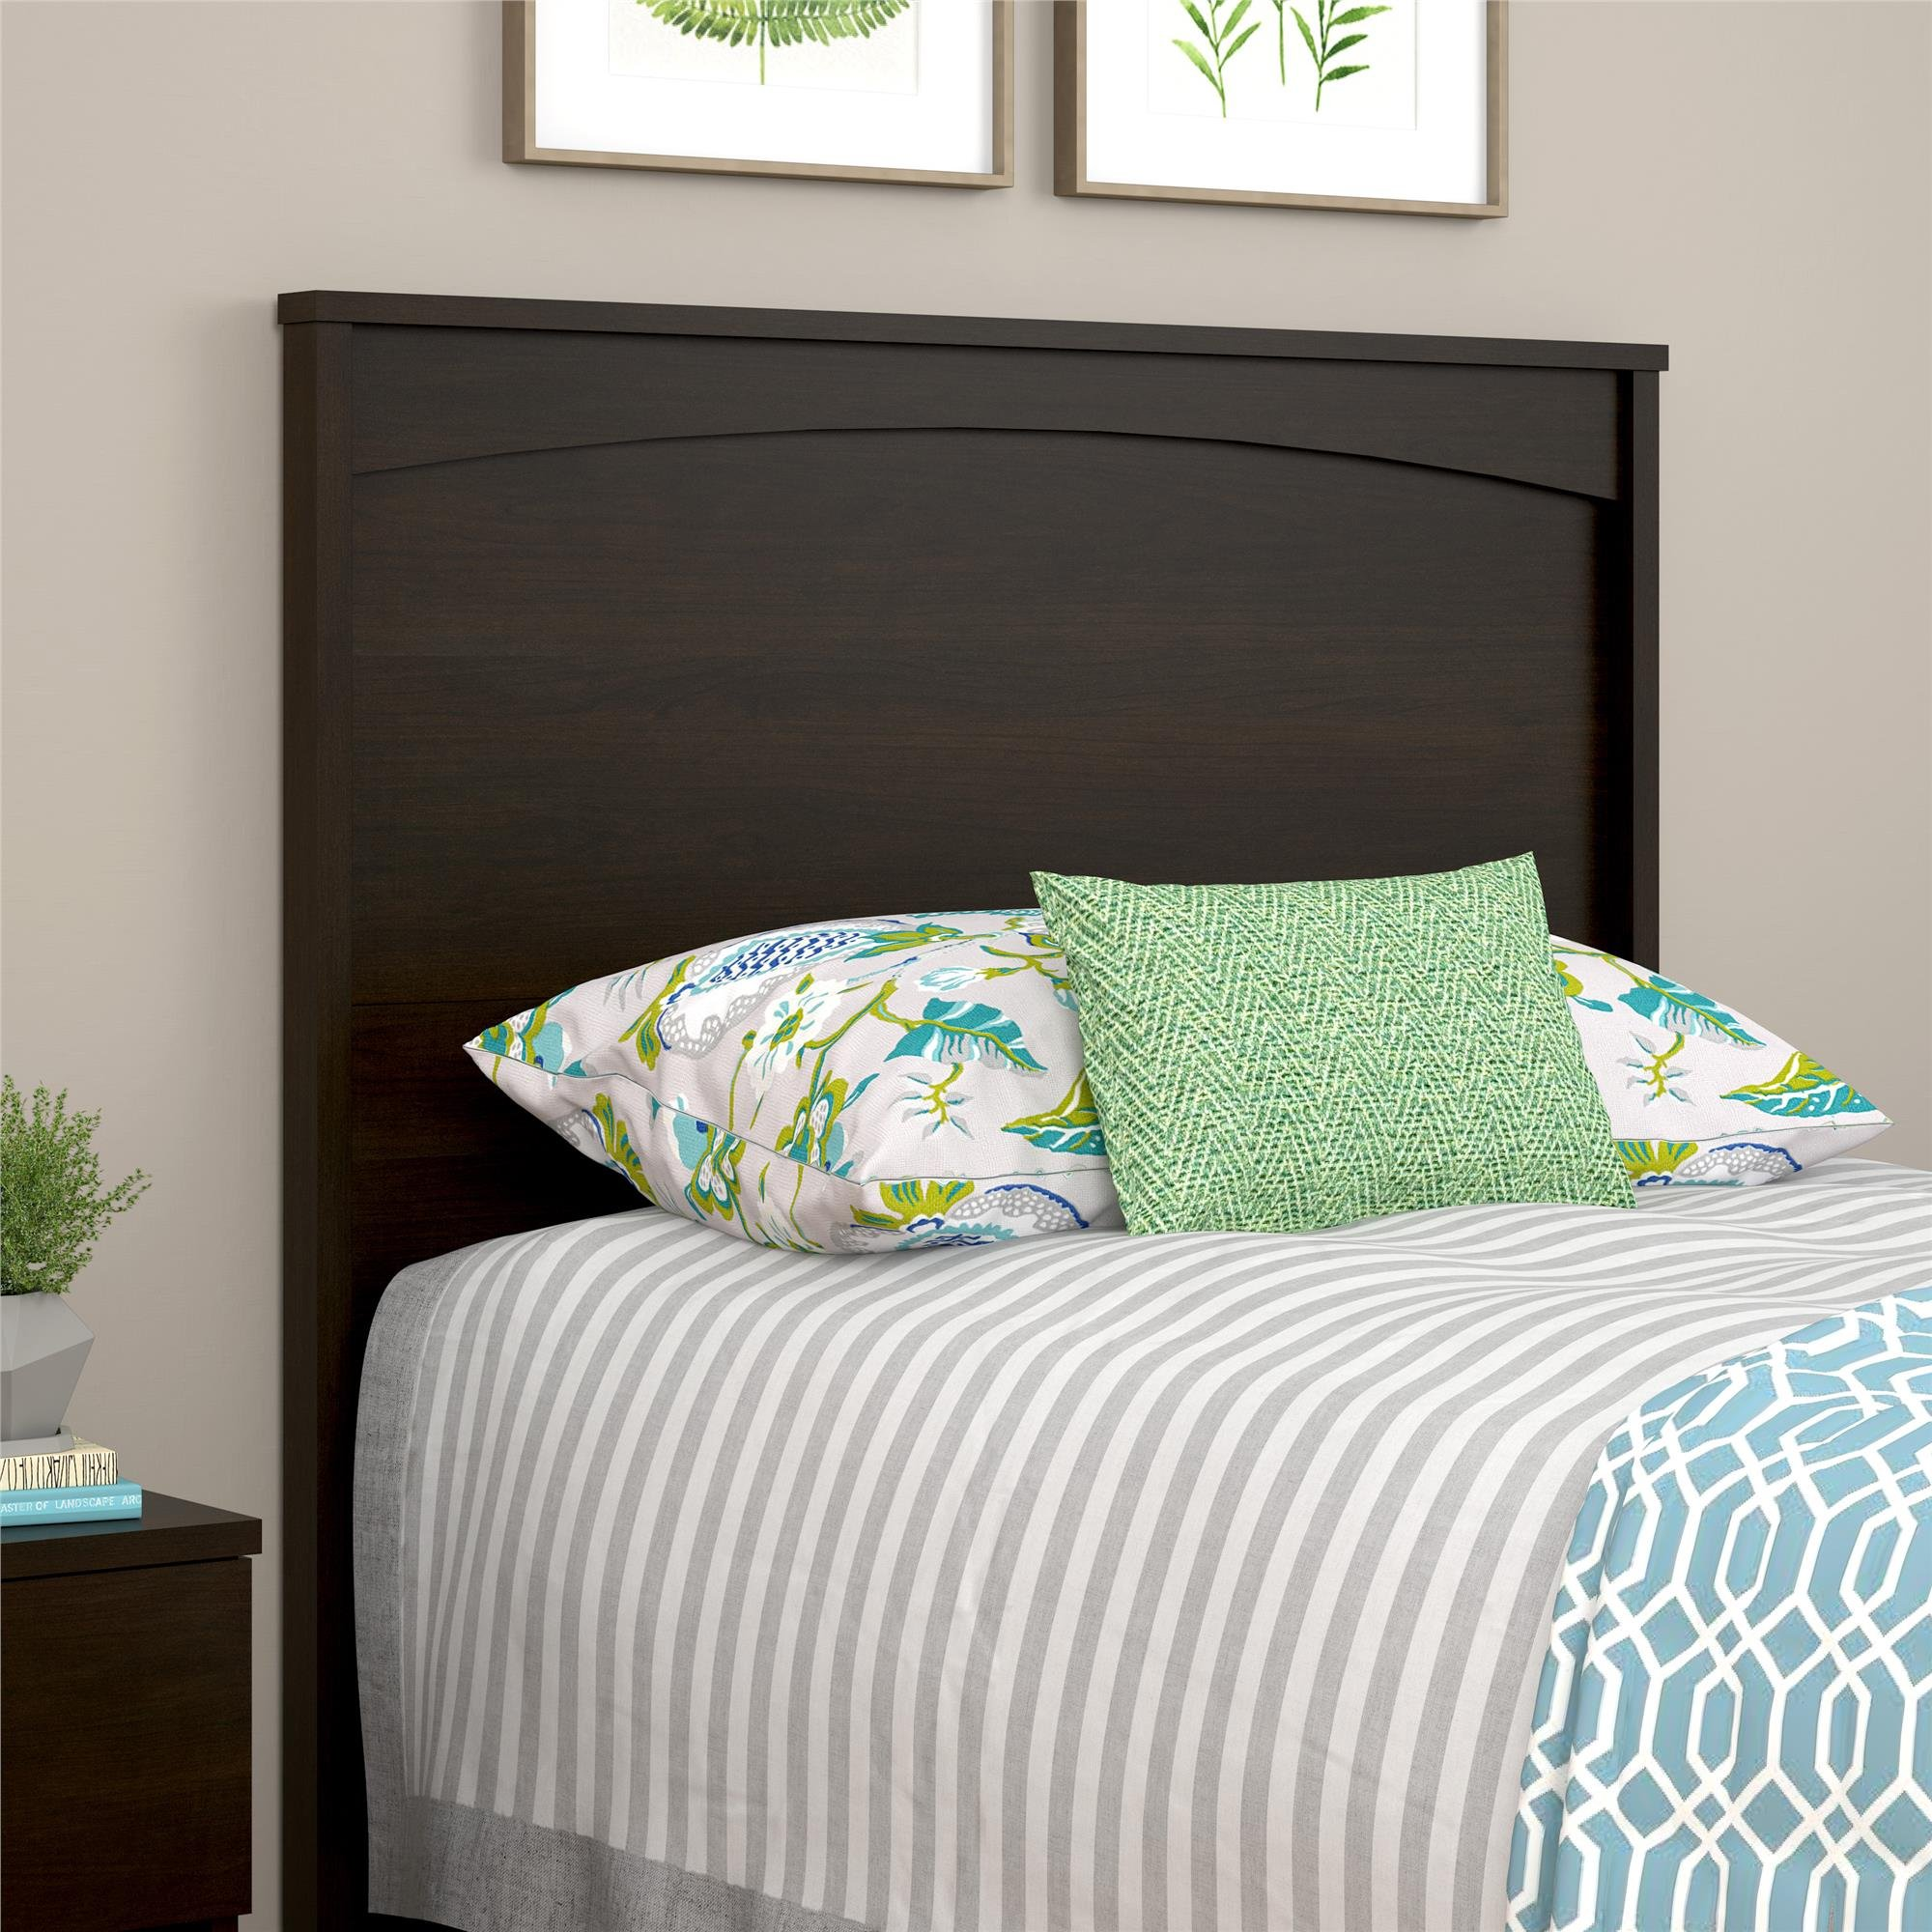 Ameriwood Home Crescent Point Twin Size Headboard, Espresso by Ameriwood Home